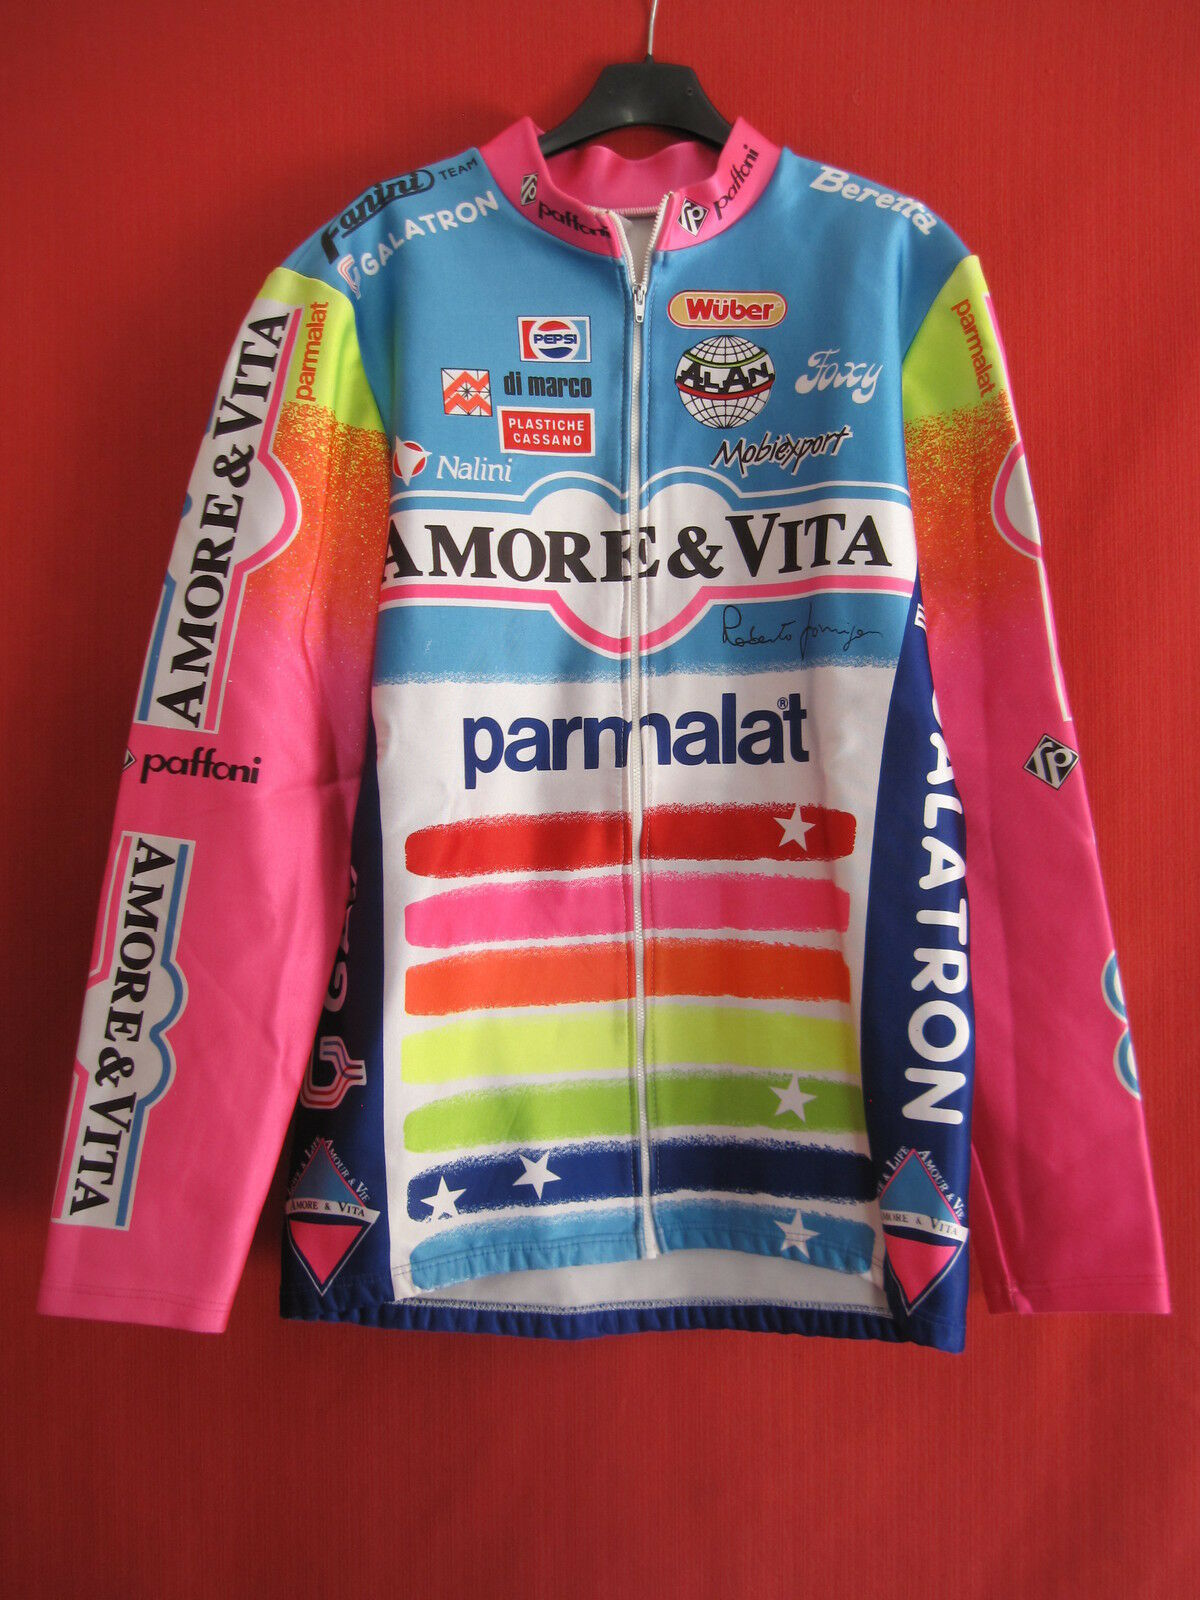 Veste cycliste Hiver Amore  Vita Parmalat 90'S Vintage Nalini - 5   XL  up to 70% off